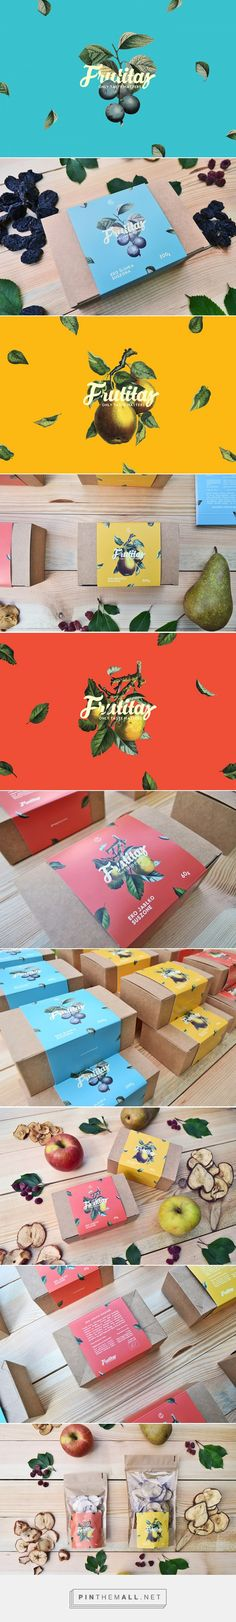 FRUTITAS by PARIS+HENDZEL STUDIO.